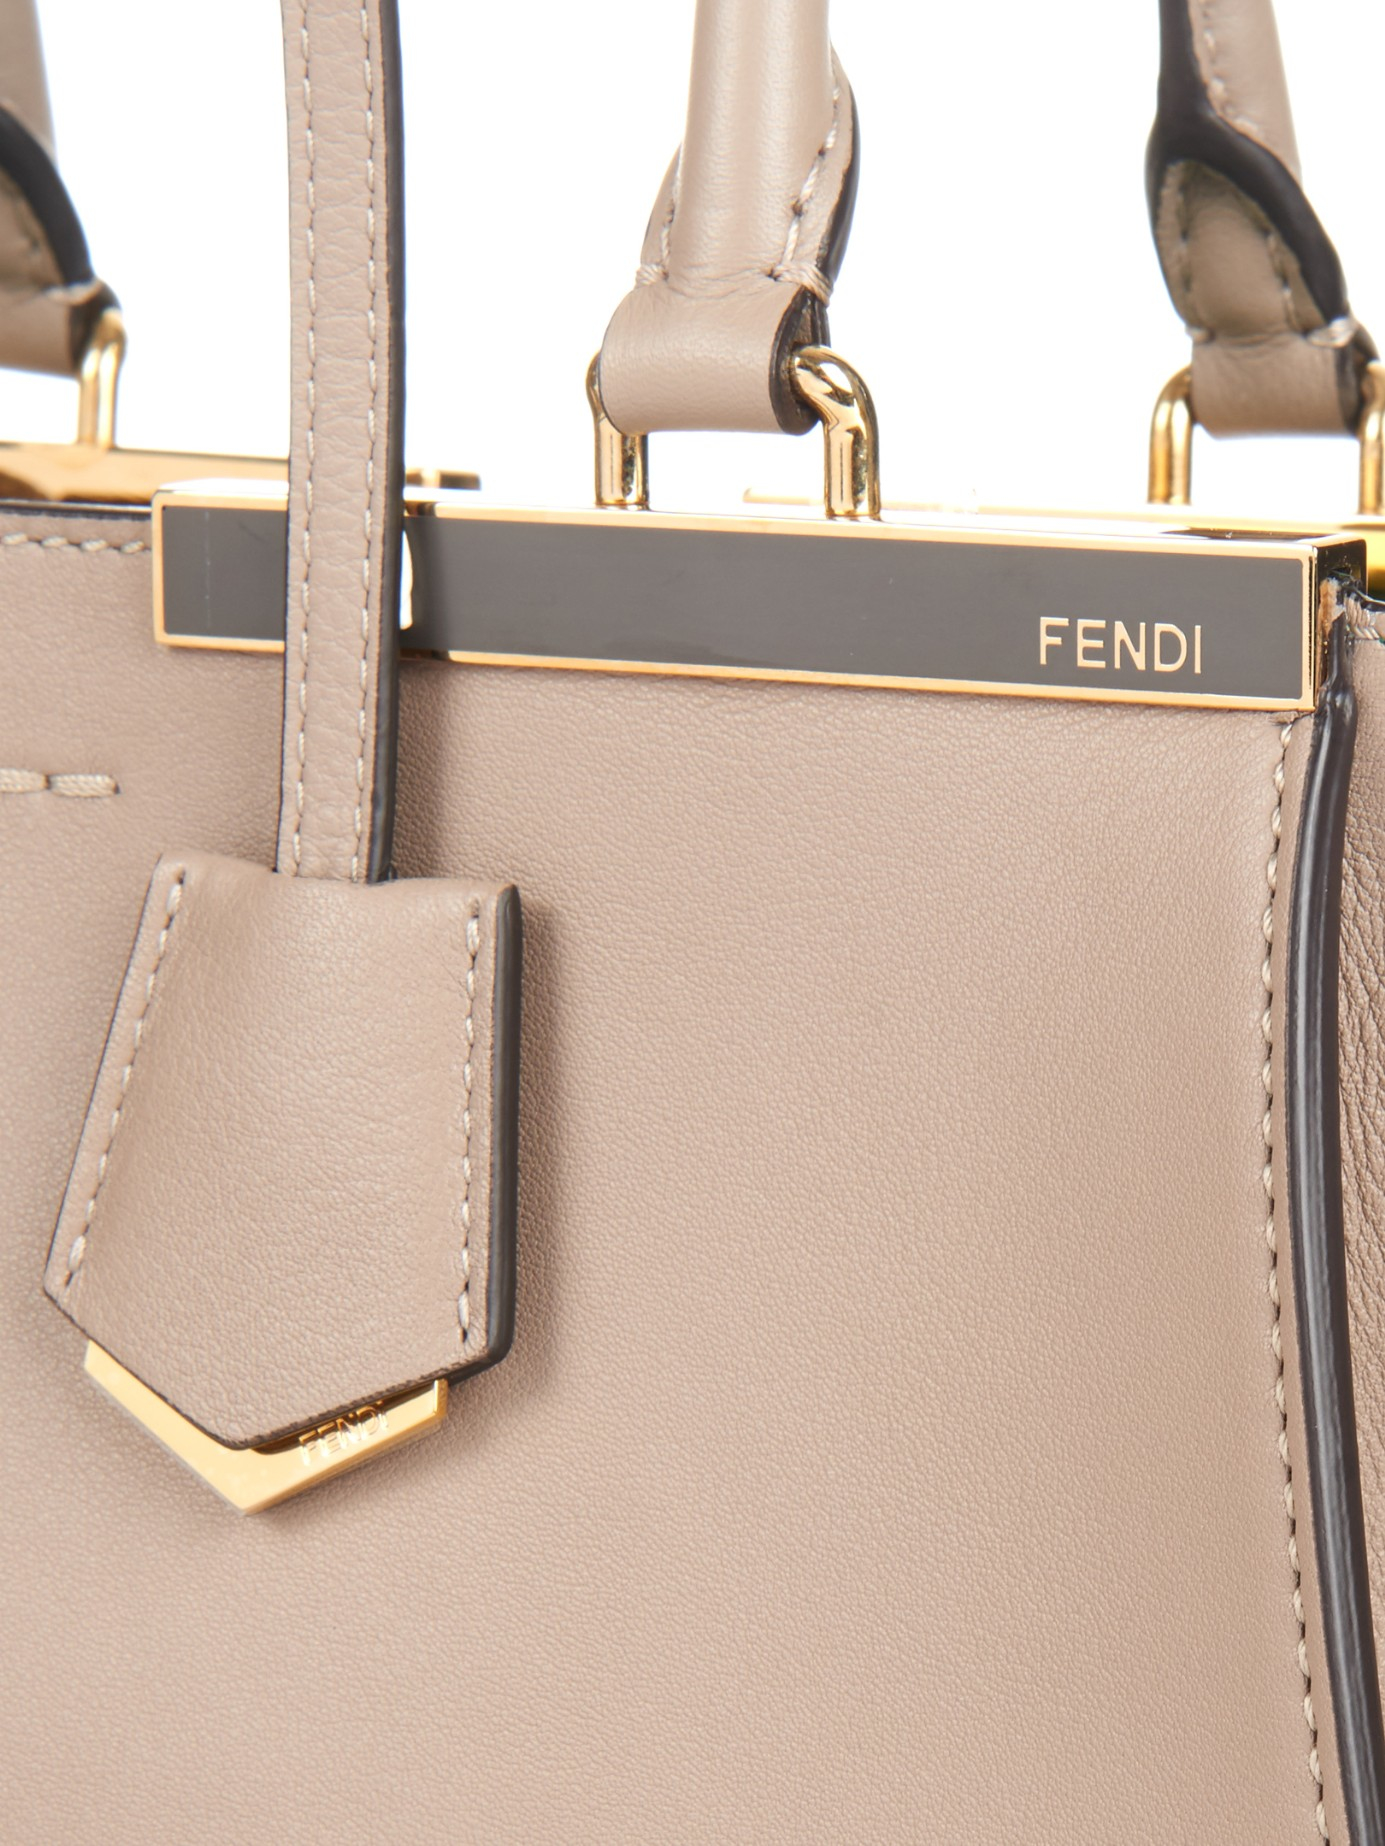 Lyst - Fendi 3Jours Small Trapeze Wing Leather Tote in Gray 7004bd6b97801